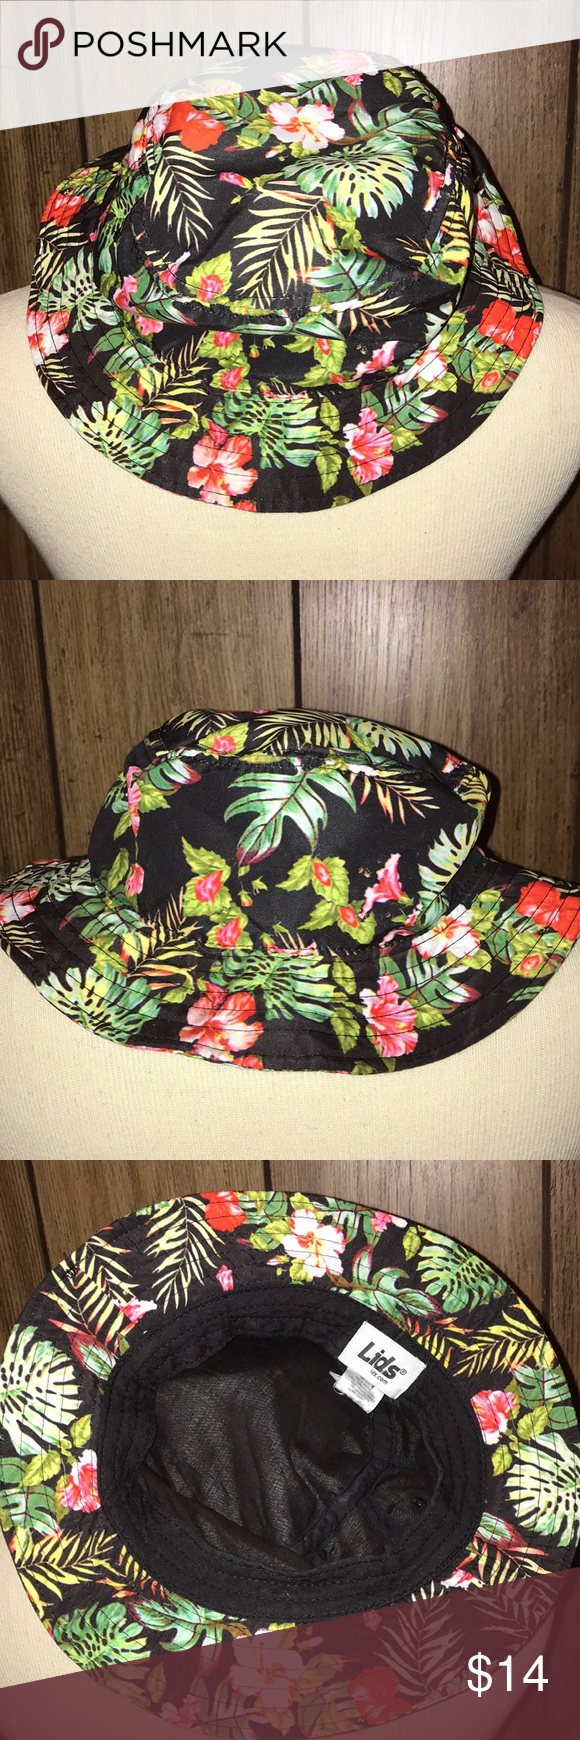 Lids Bucket Hat Hawaiian Print Black With Red White Hibiscus And Leaves Lids Other Clothes Design White Hibiscus Fashion